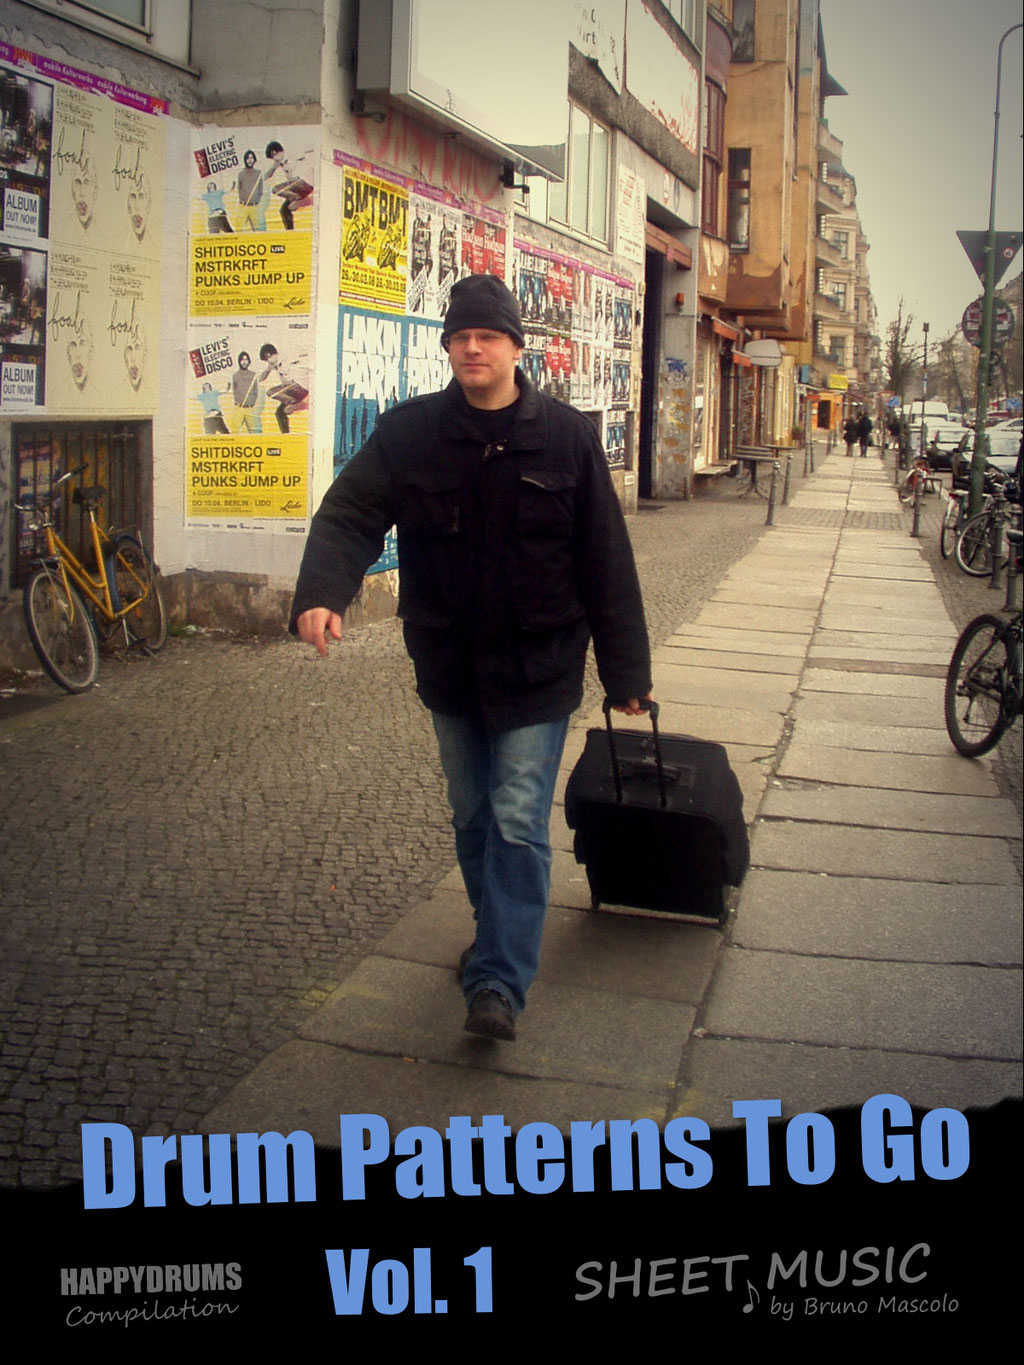 Drum Patterns To Go - Vol. 1 - Happydrums Compilation